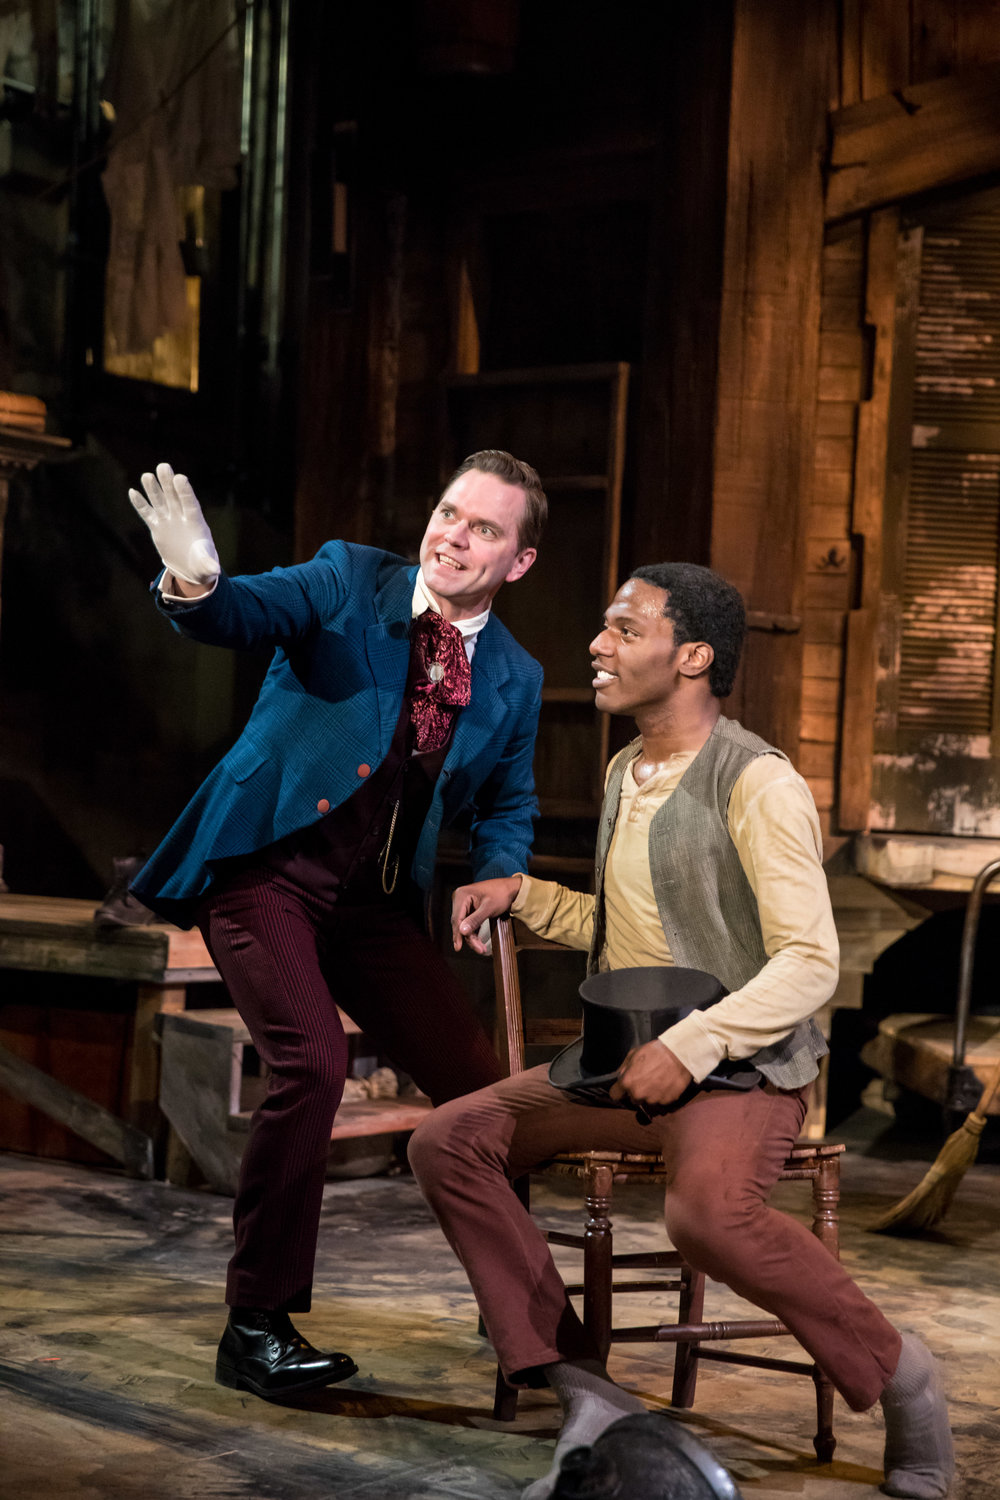 Dieter Bierbrauer (P.T. Barnum) and Lamar Jefferson (Willie Lane), Photo credit: Dan Norman